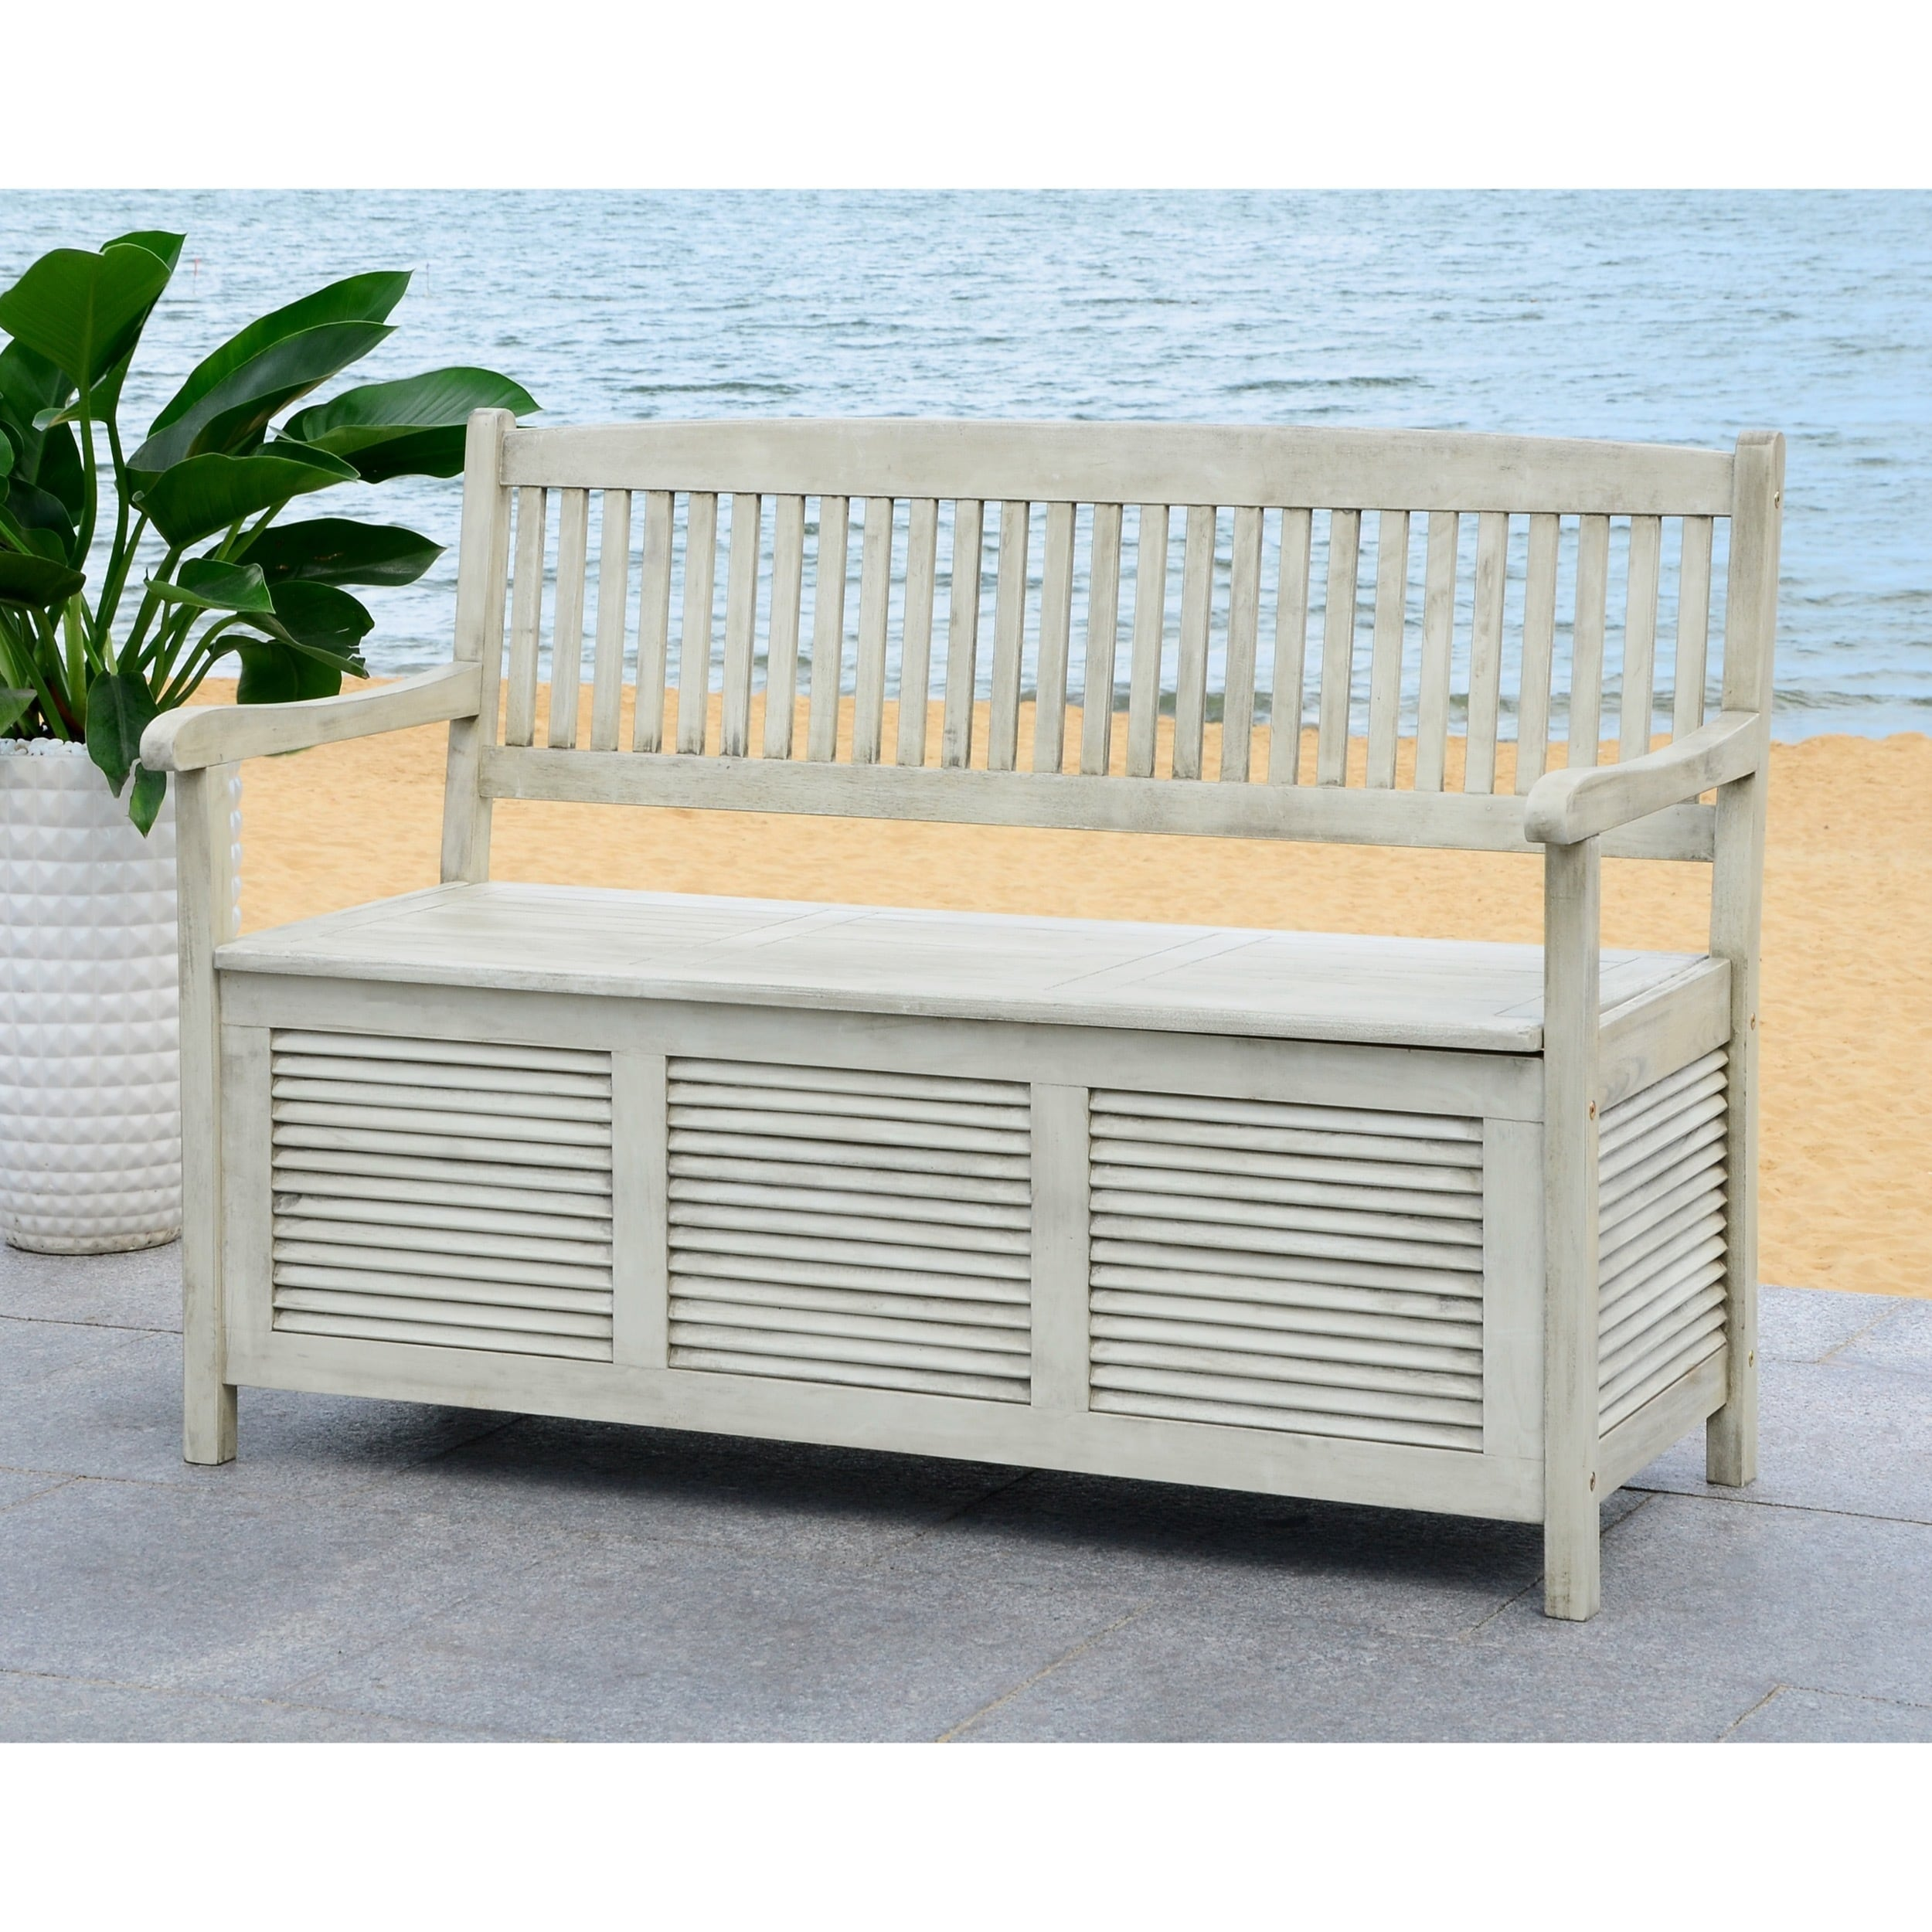 Astonishing Safavieh Outdoor Living Brisbane Distressed White Storage Bench 50 X 24 X 35 2 Gamerscity Chair Design For Home Gamerscityorg